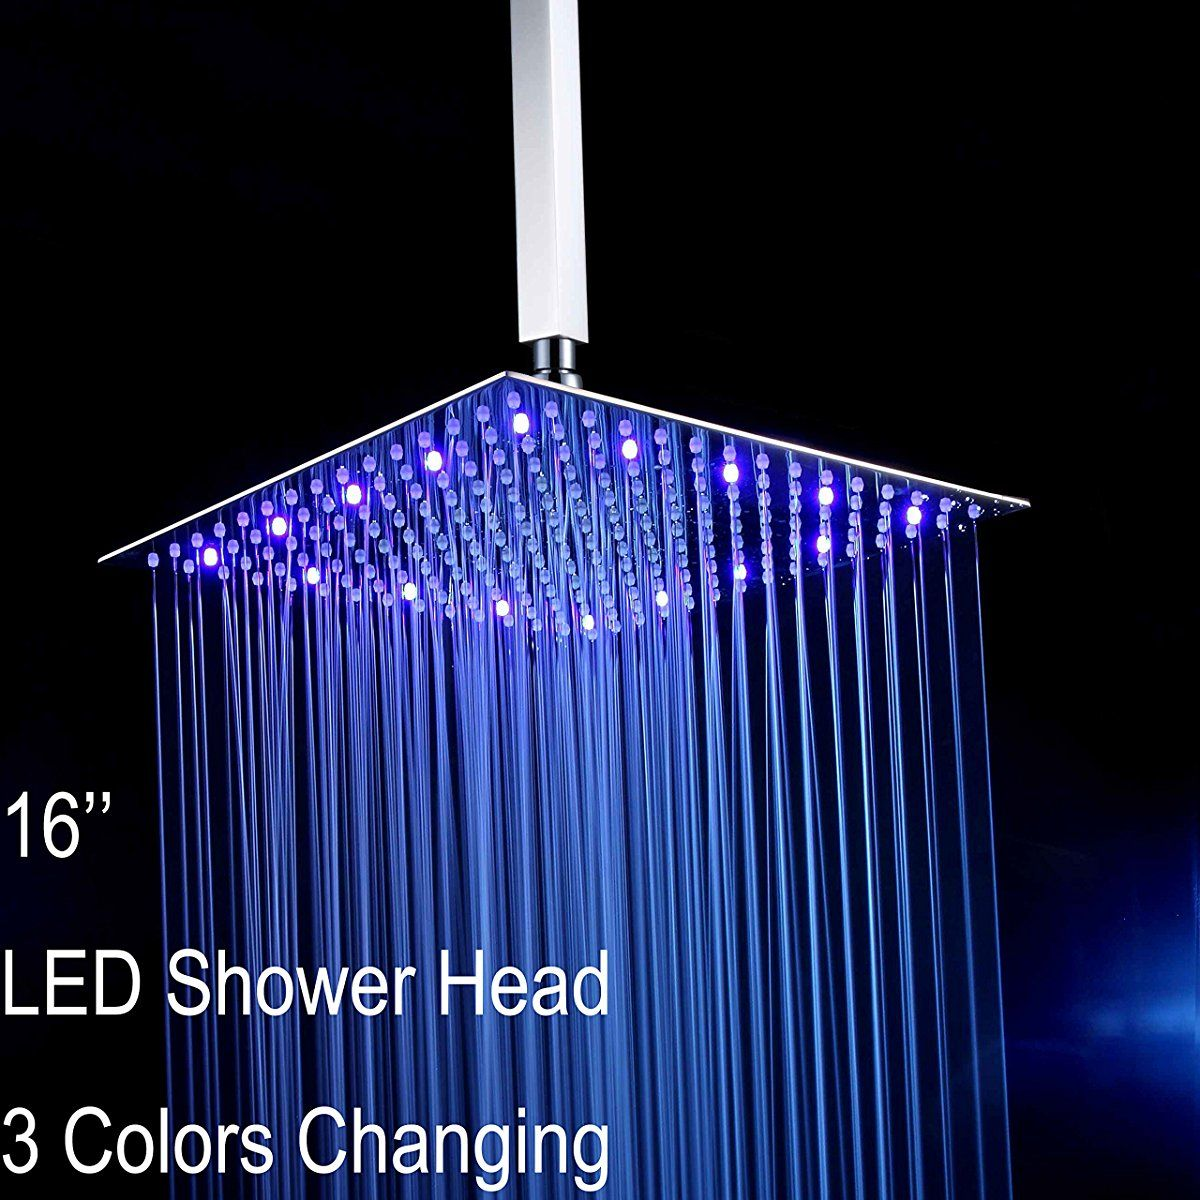 Pin On Stainless Steel Led Shower Head